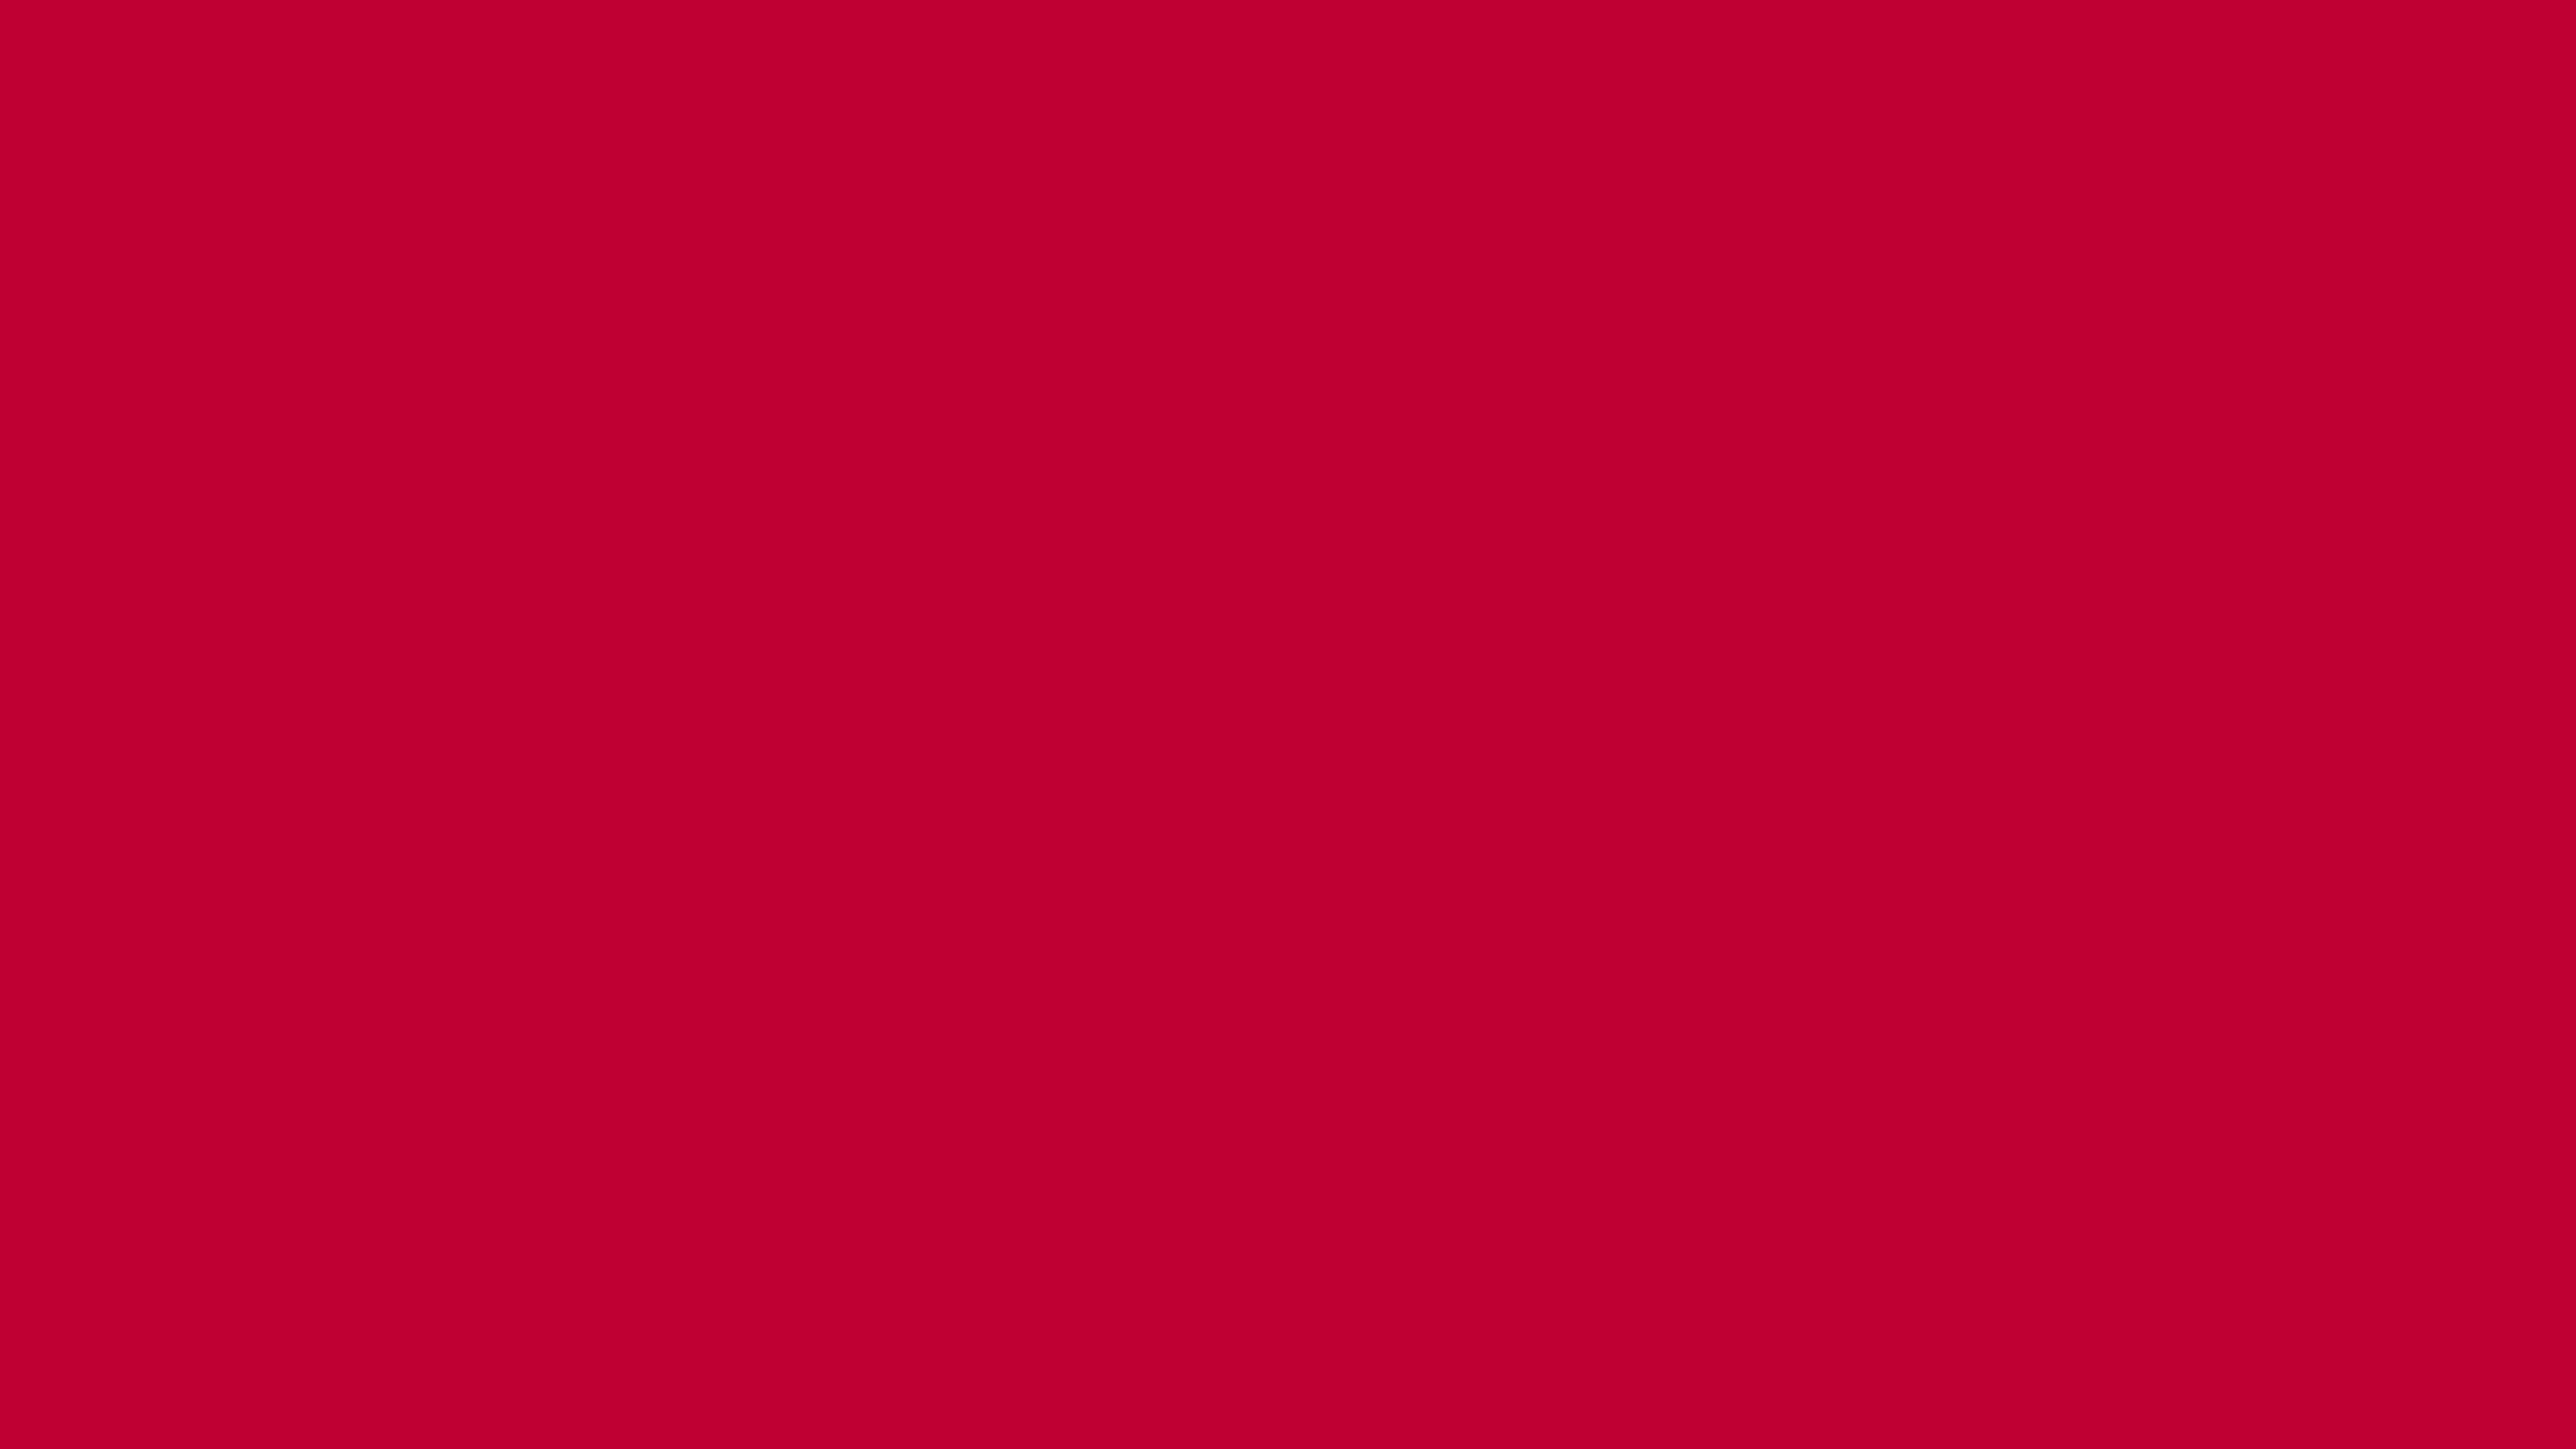 3840x2160 Crimson Glory Solid Color Background